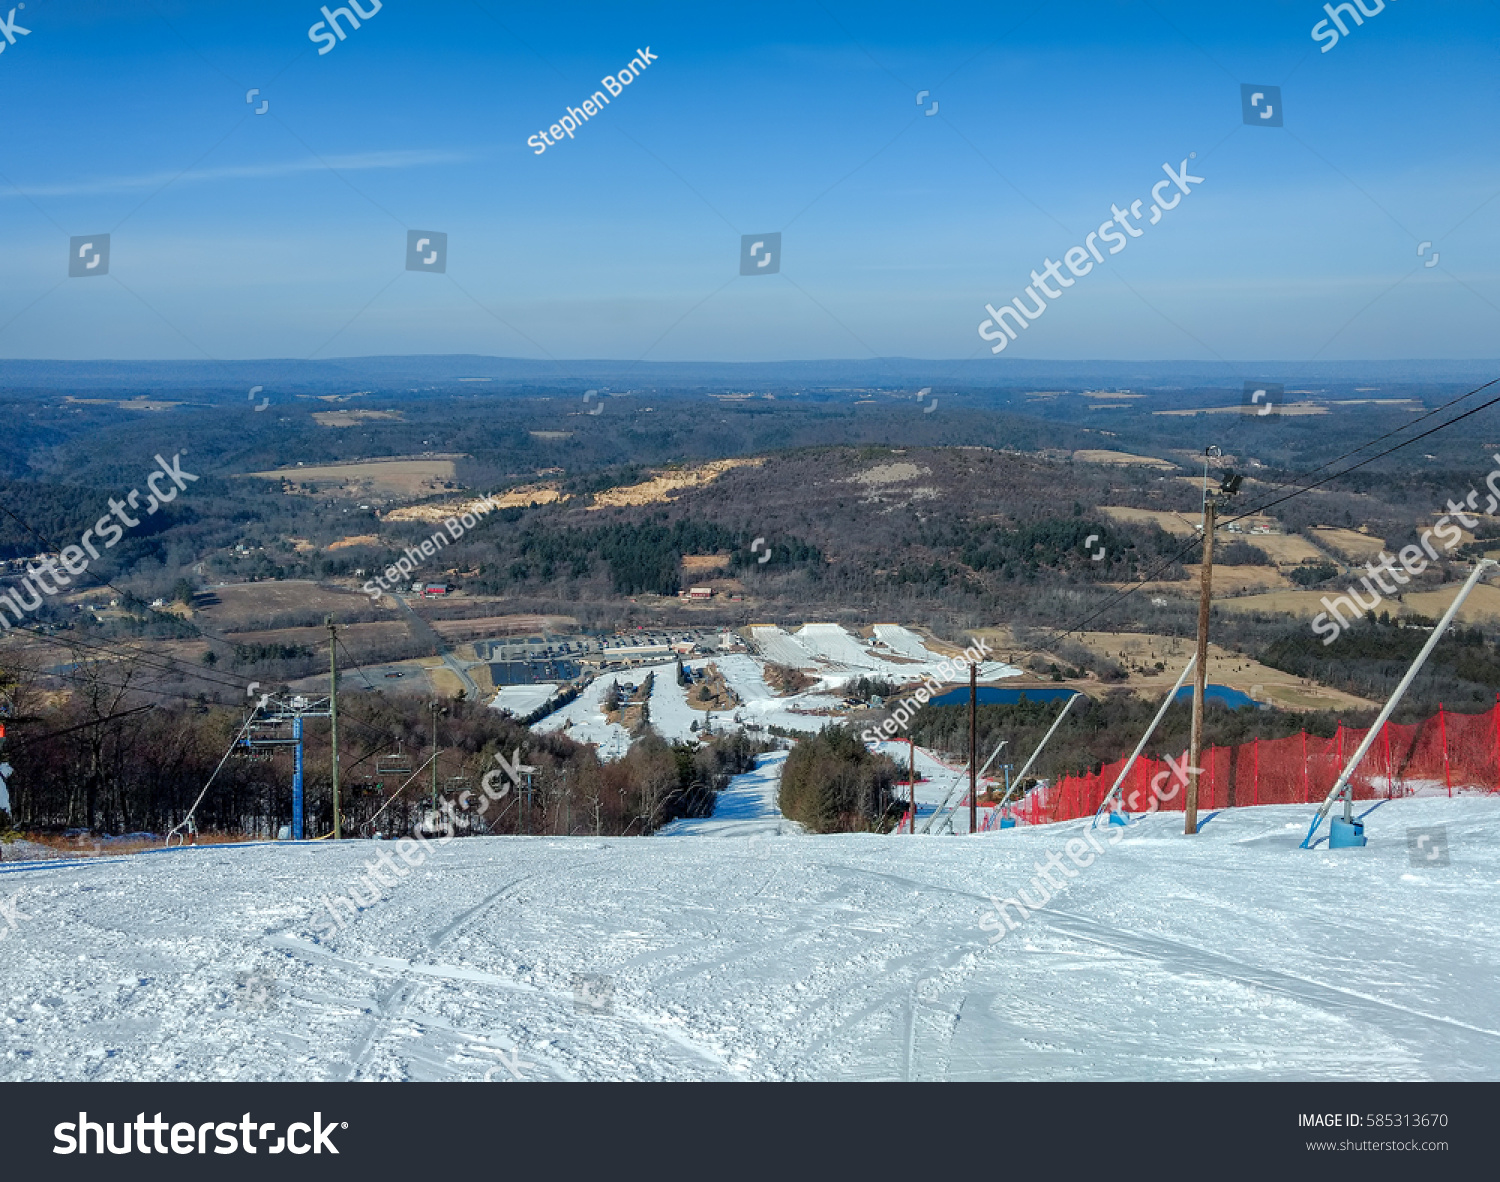 blue mountain ski slopes pocono mountains stock photo (edit now